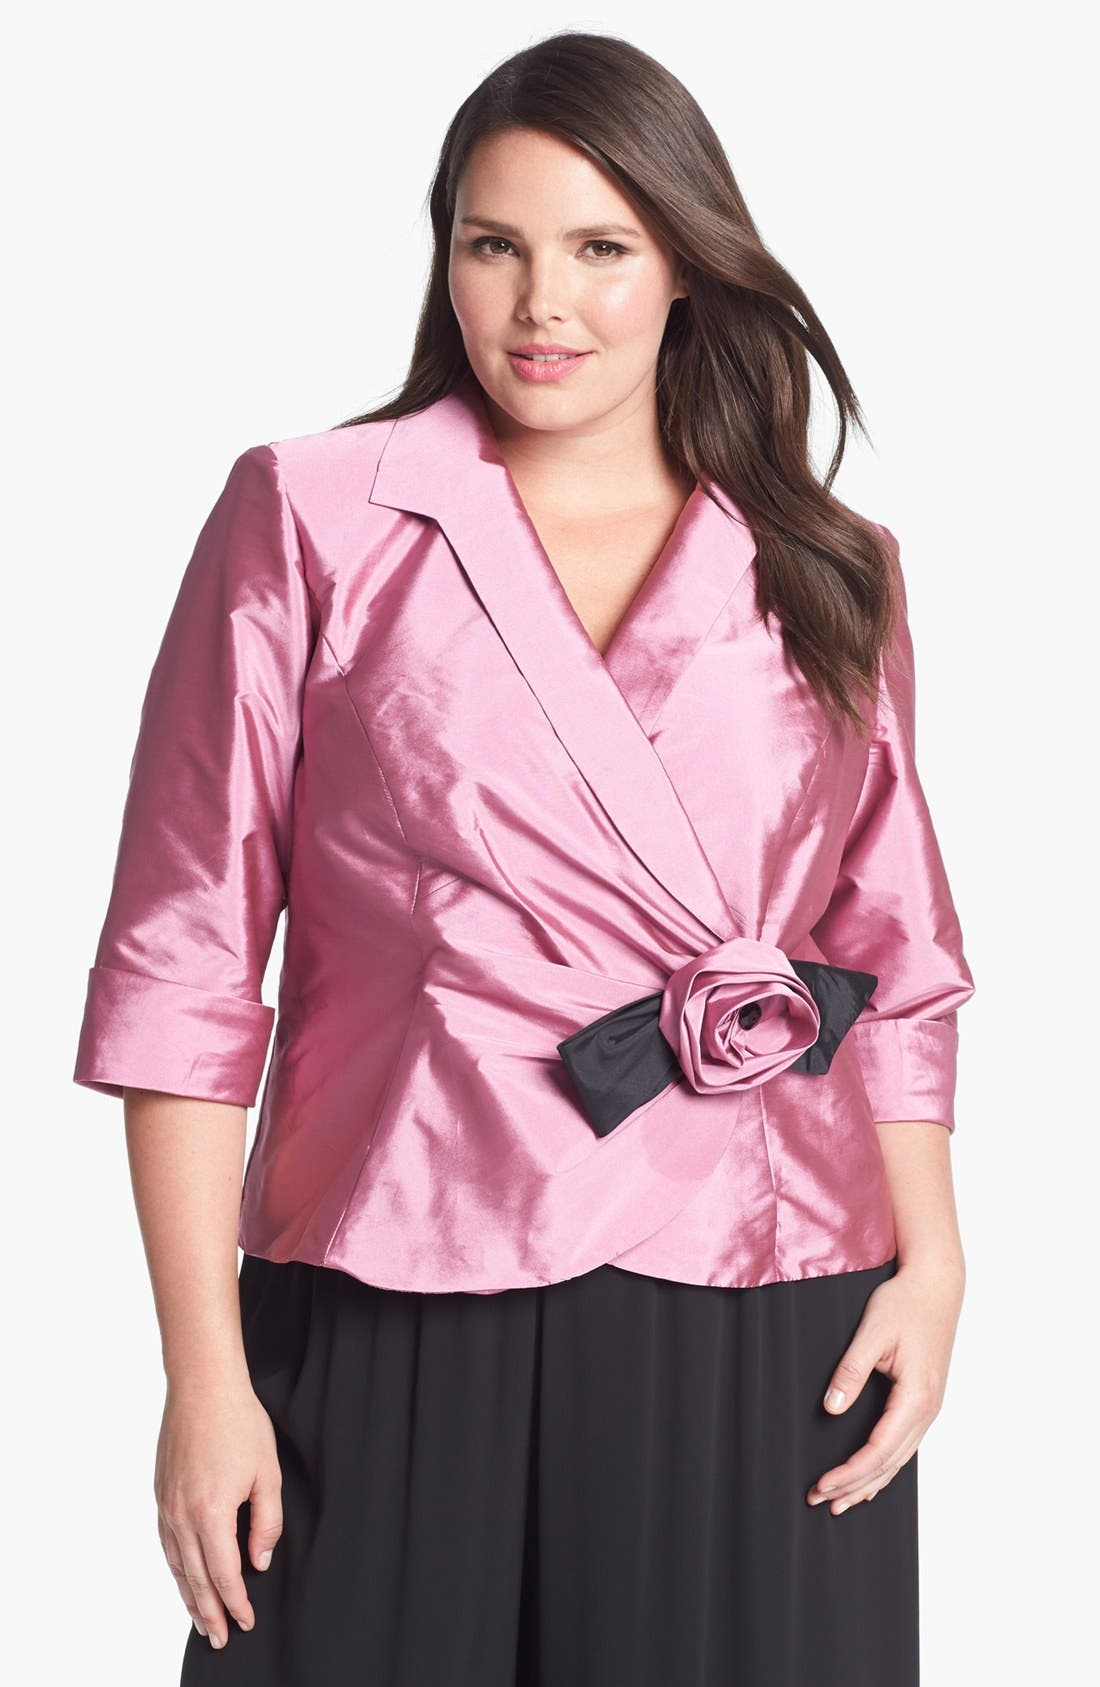 Rosette Wrap Blouse,                             Main thumbnail 1, color,                             697